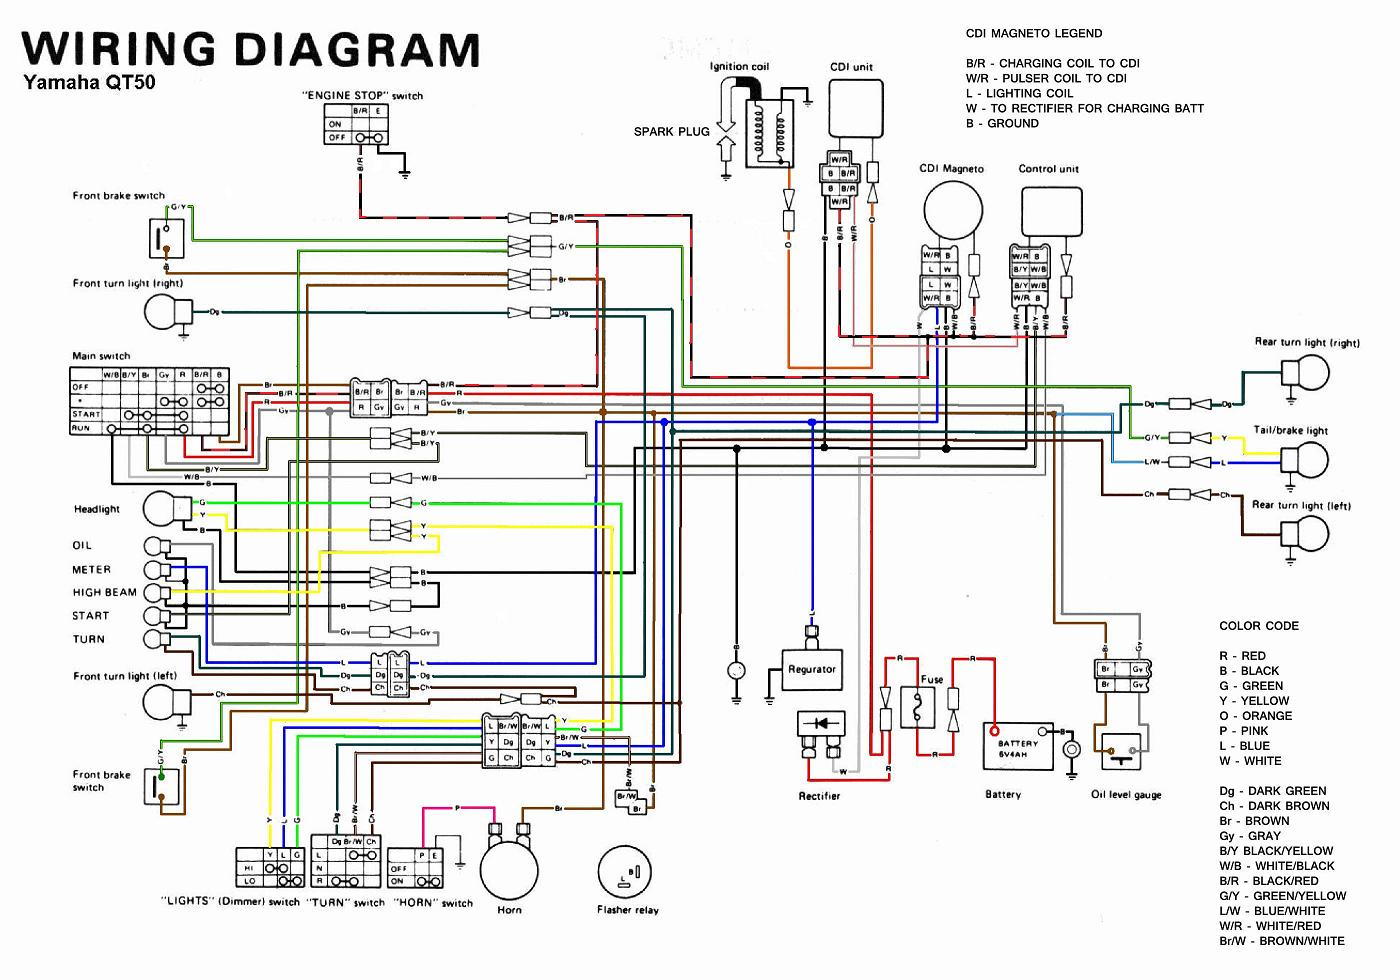 1978 yamaha dt 125 wiring diagram wiring library 1978 yamaha dt100 1978 yamaha dt125 wiring schematic [ 1400 x 980 Pixel ]